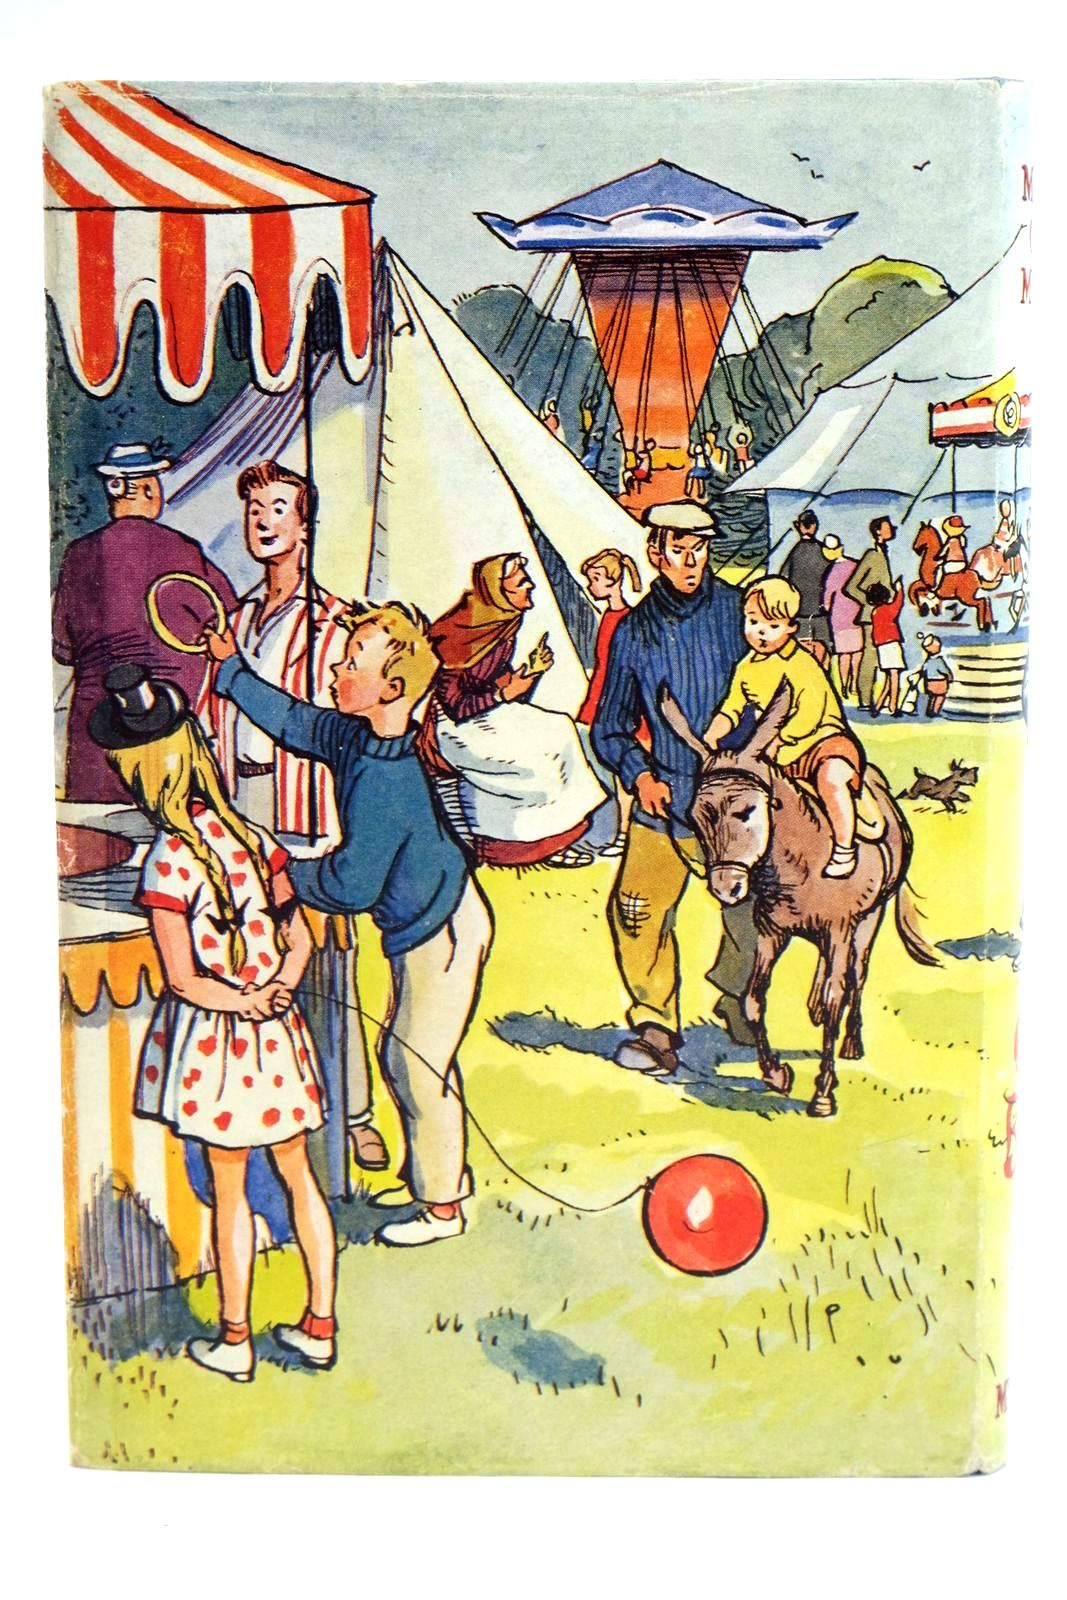 Photo of THE MYSTERY OF THE MISSING MAN written by Blyton, Enid illustrated by Buchanan, Lilian published by Methuen & Co. Ltd. (STOCK CODE: 1319772)  for sale by Stella & Rose's Books